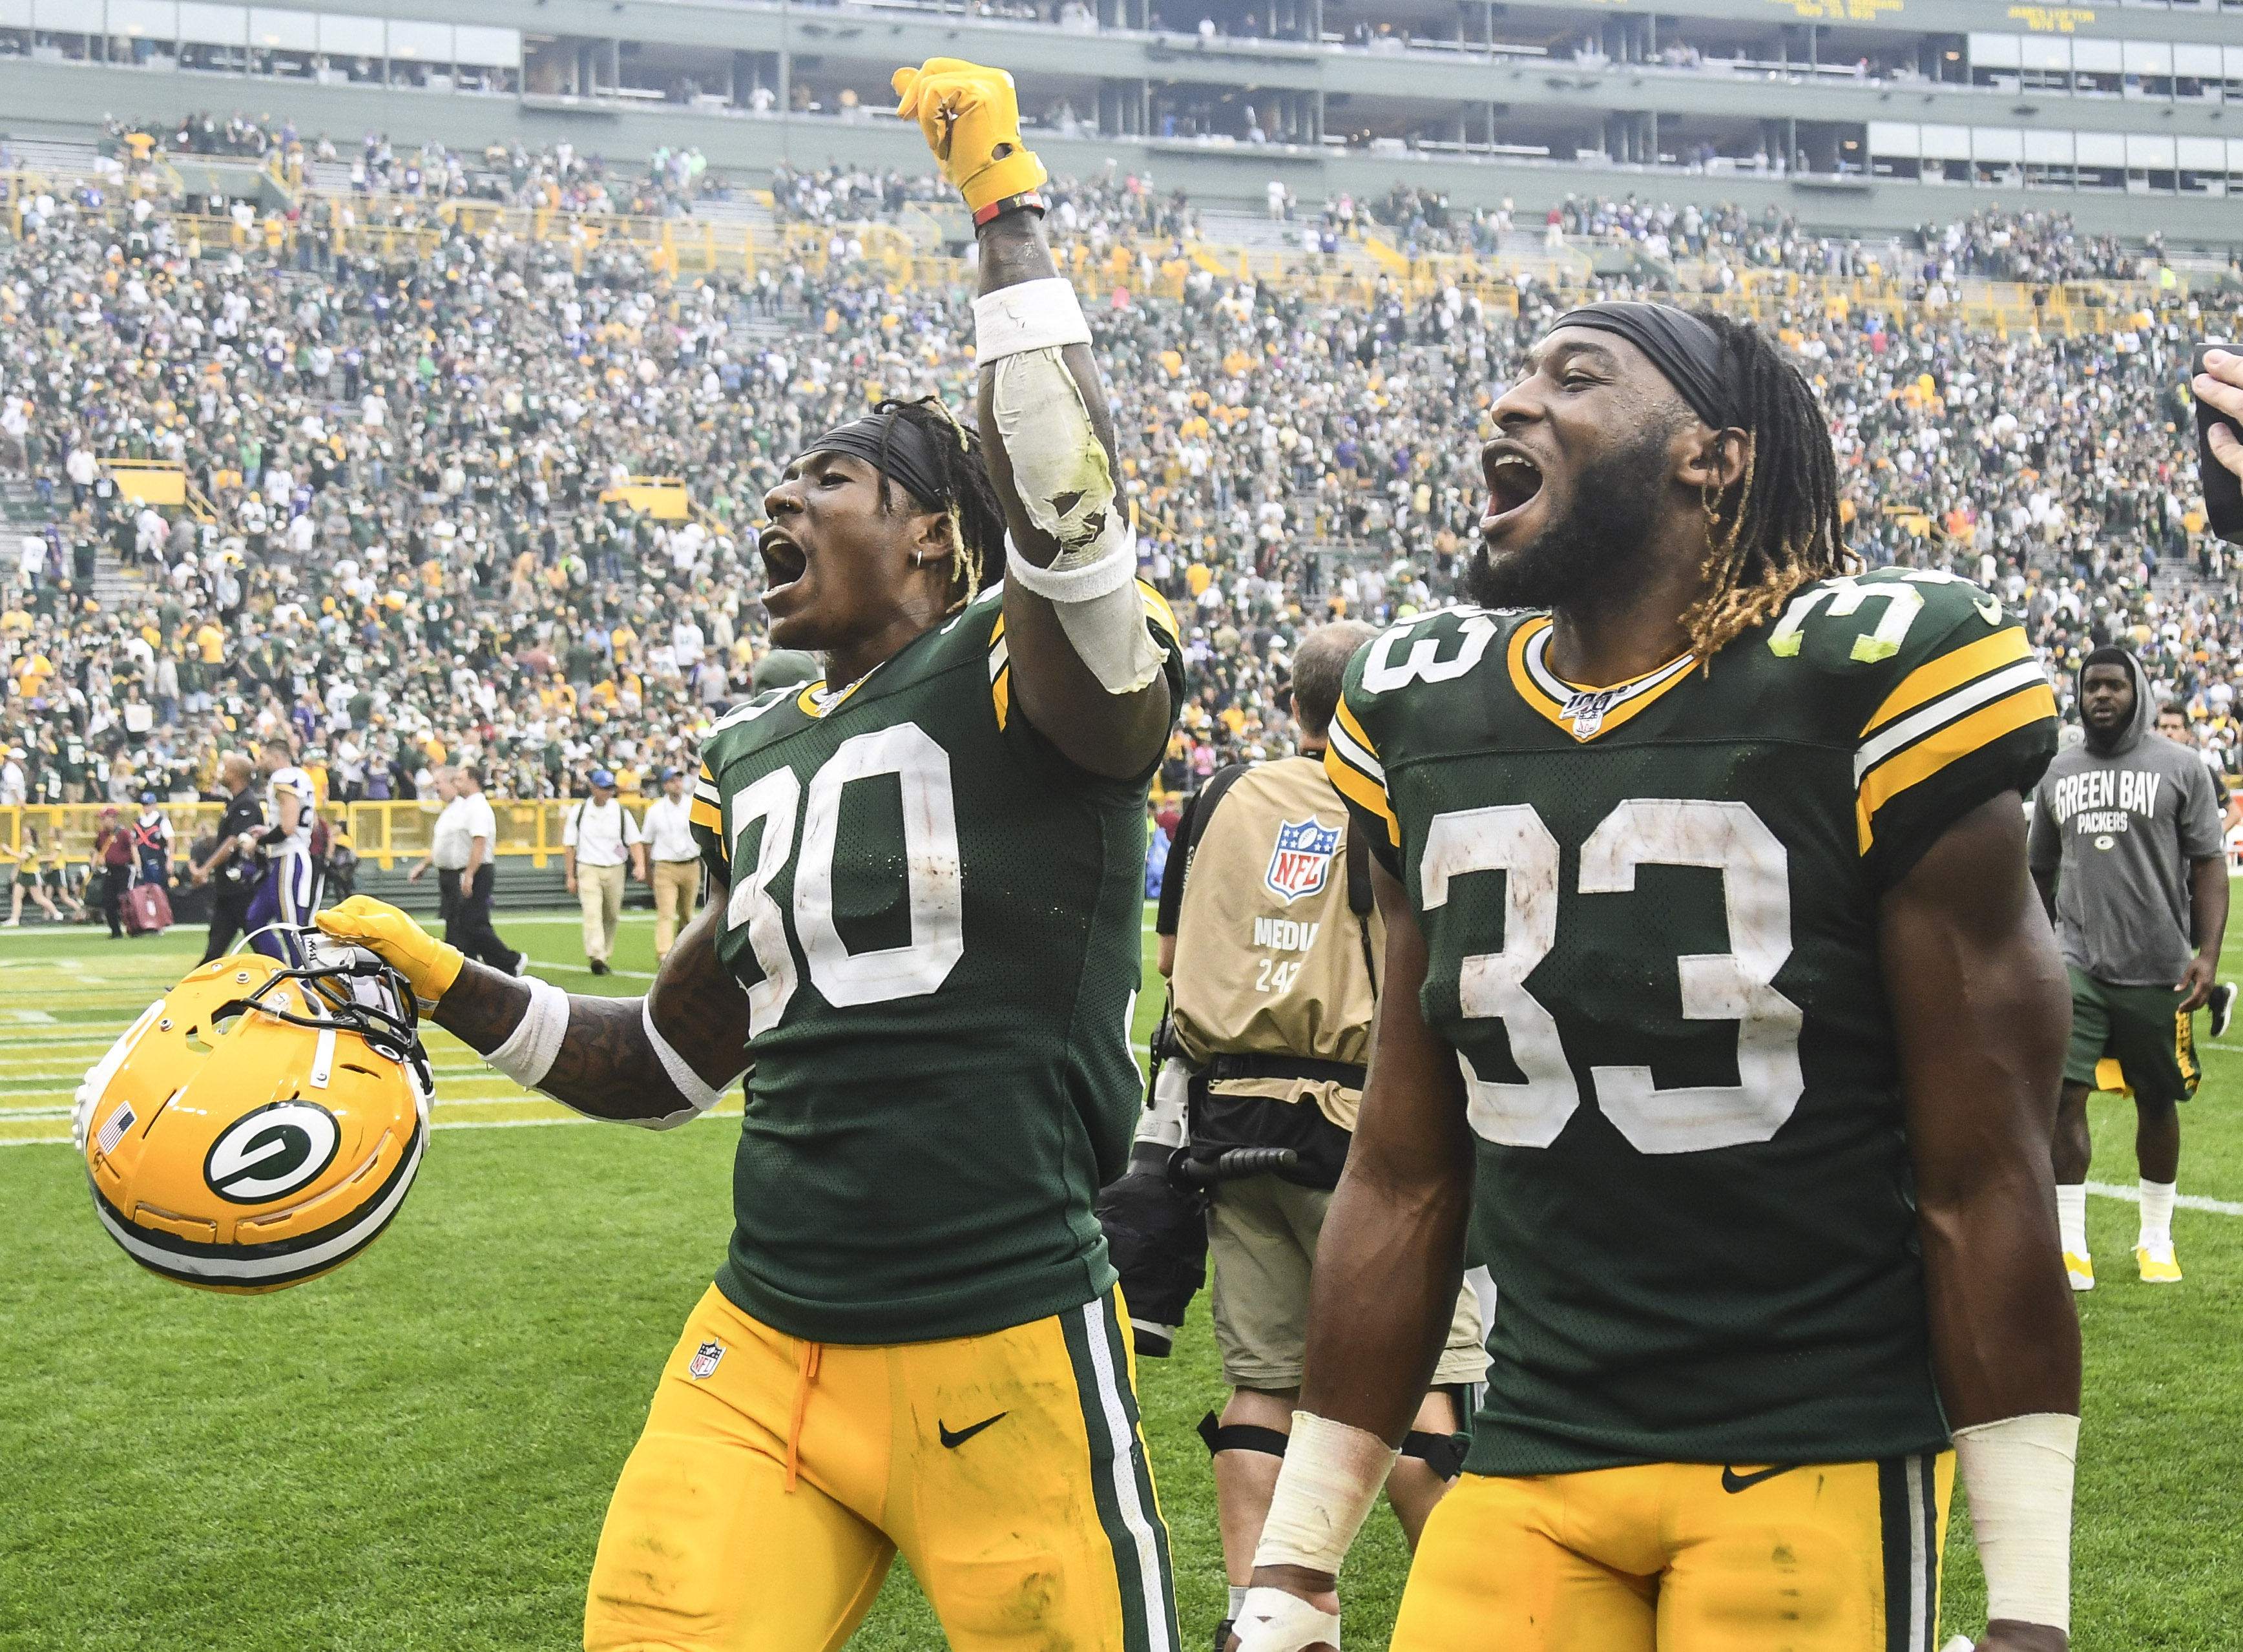 Packers Rushing Attack Has a Strong One-Two Punch with Aaron Jones and Jamaal Williams